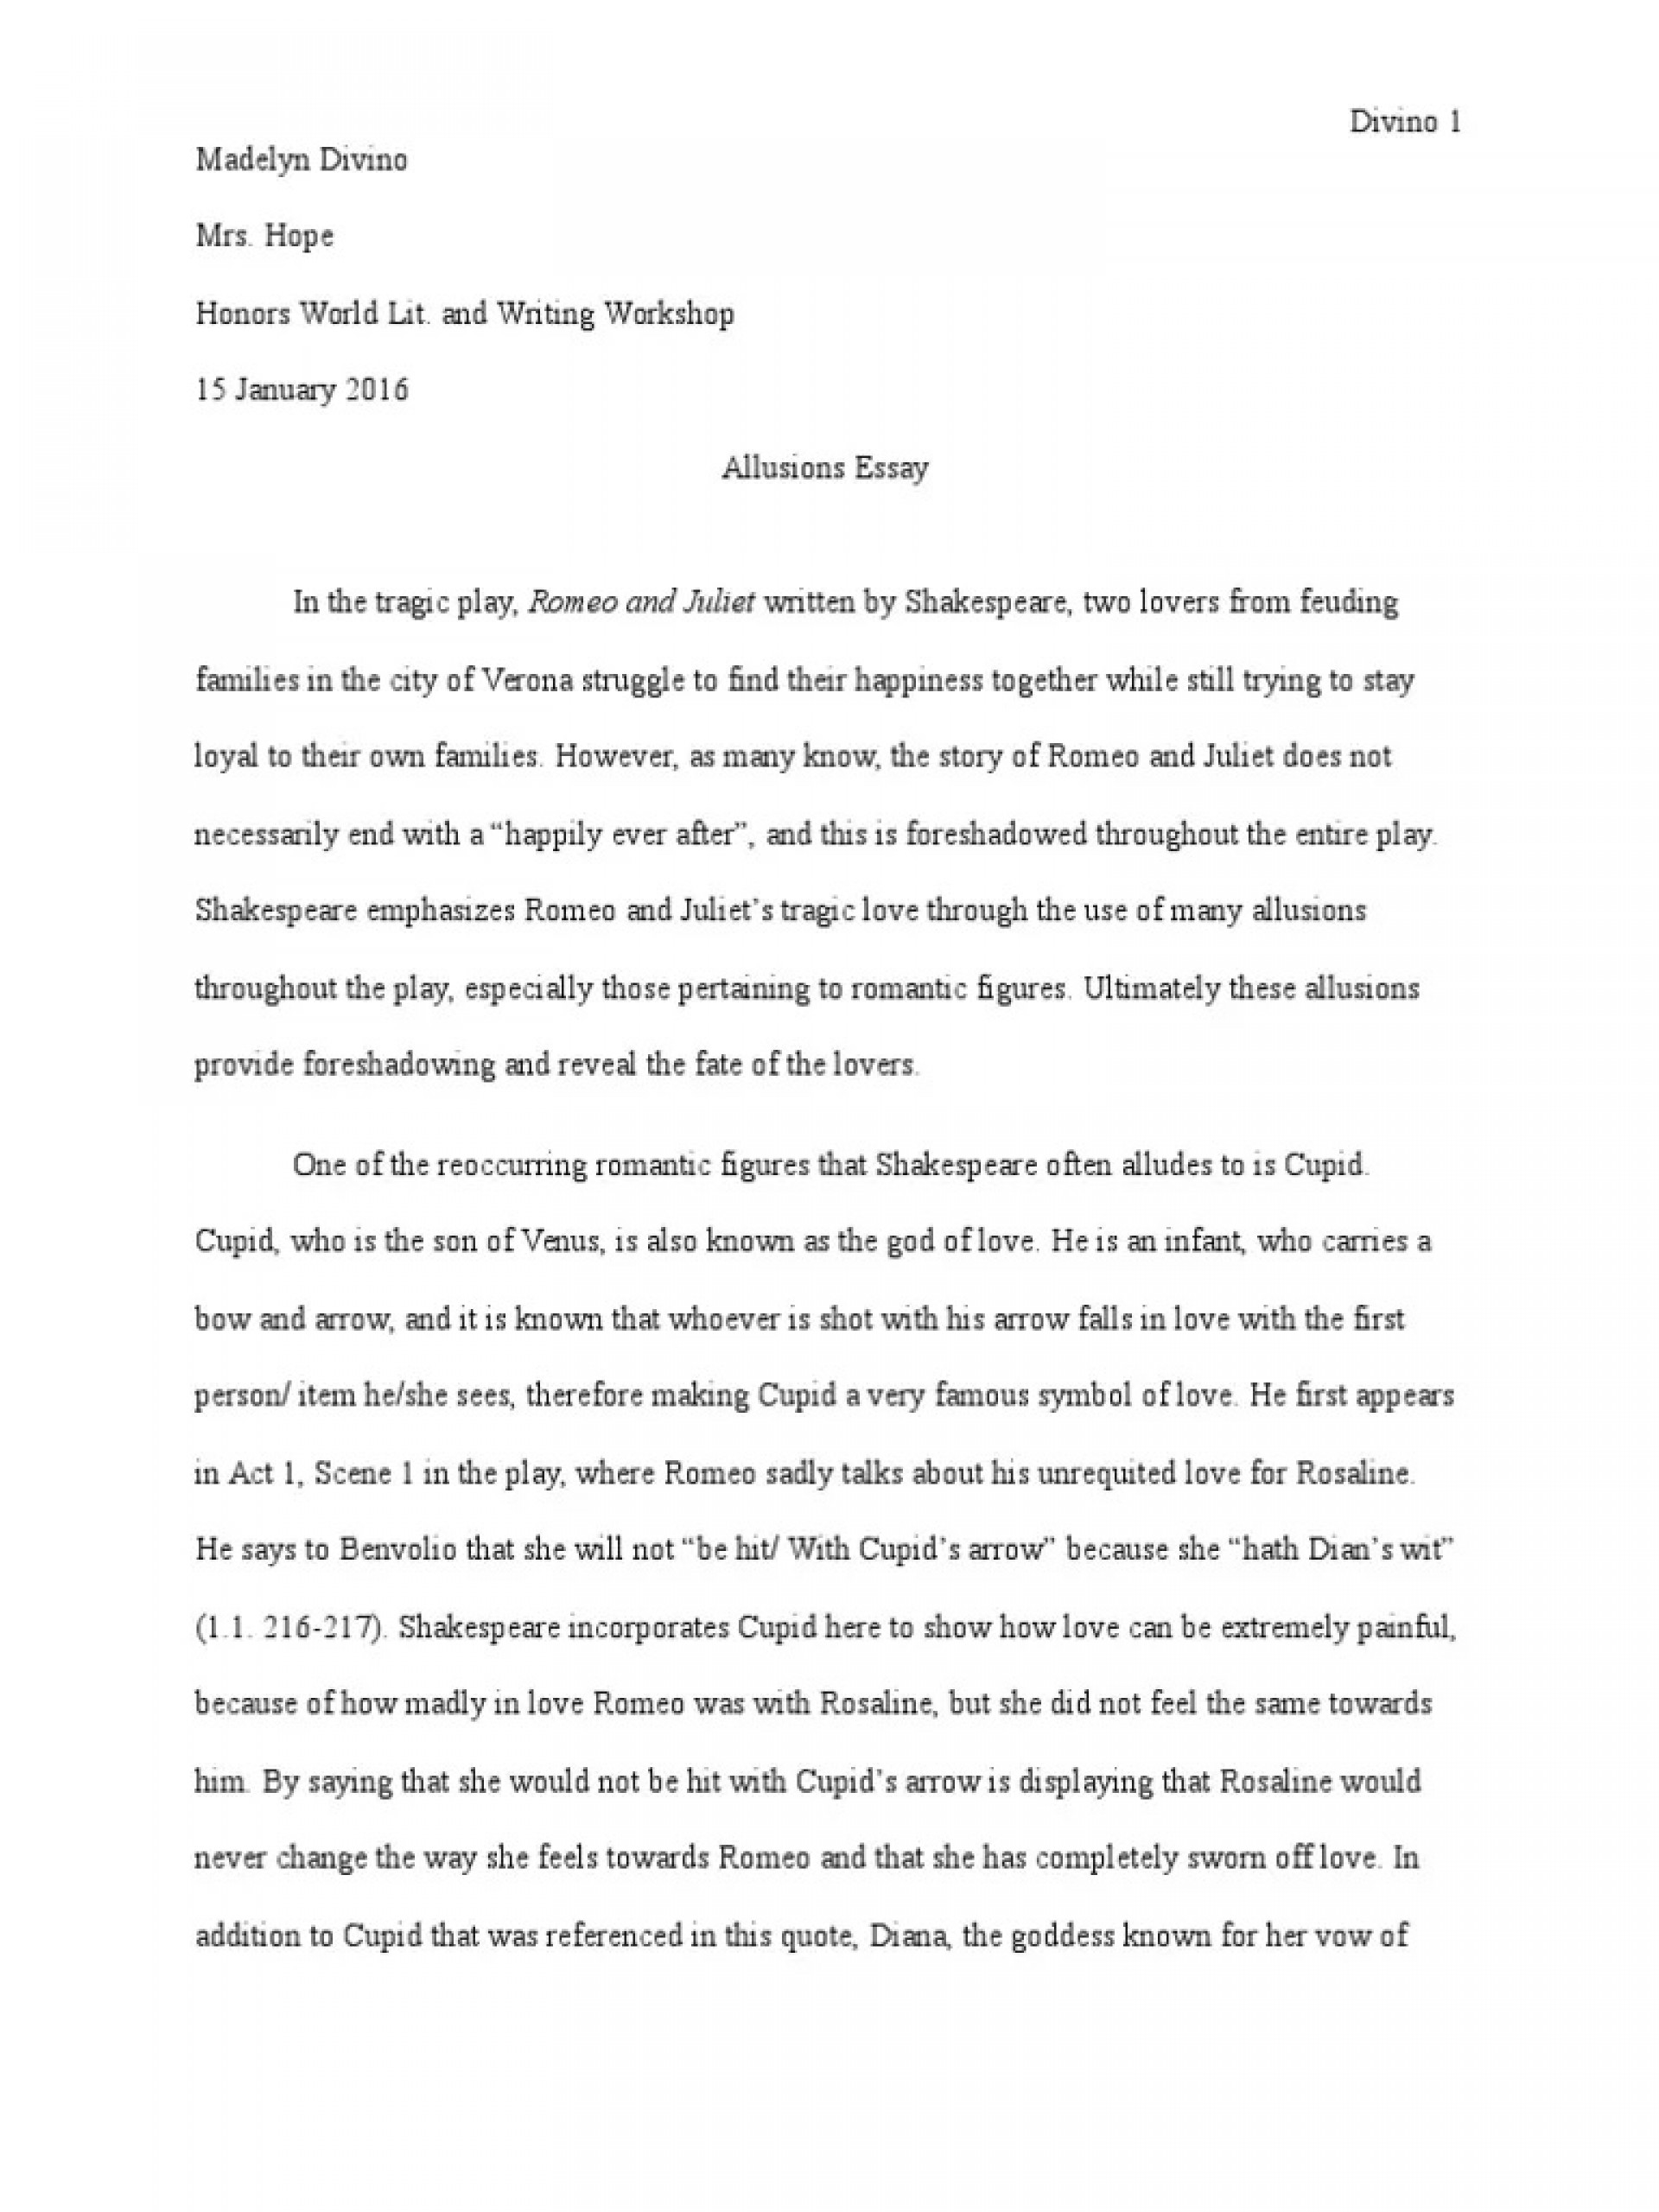 005 Stunning Romeo And Juliet Essay Inspiration  Who I Responsible For Juliet' Death Introduction Hook Question Pdf1920